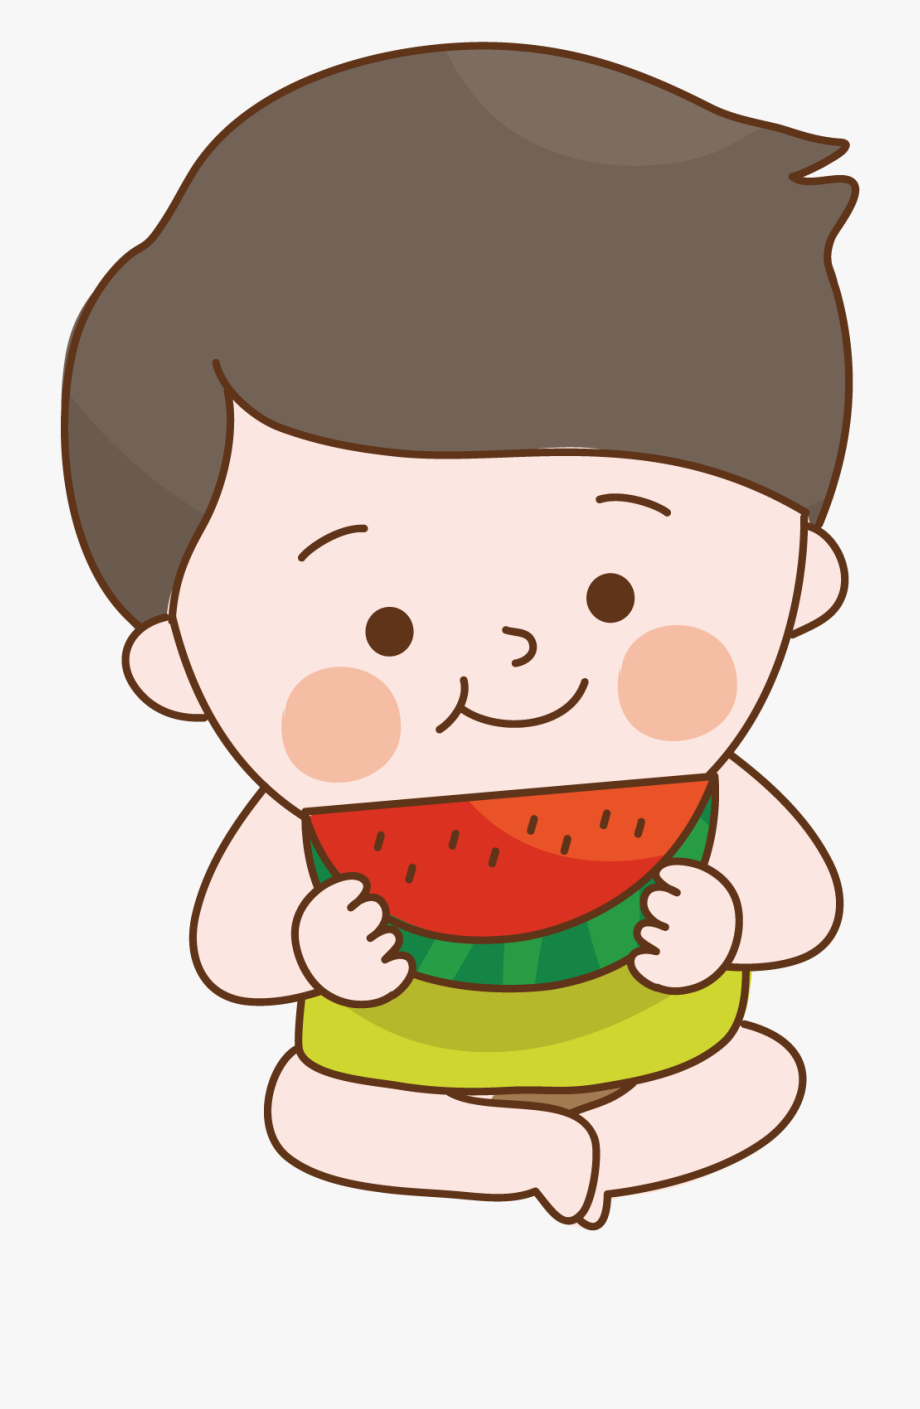 Watermelon clipart healthy snack. Child food sitting to